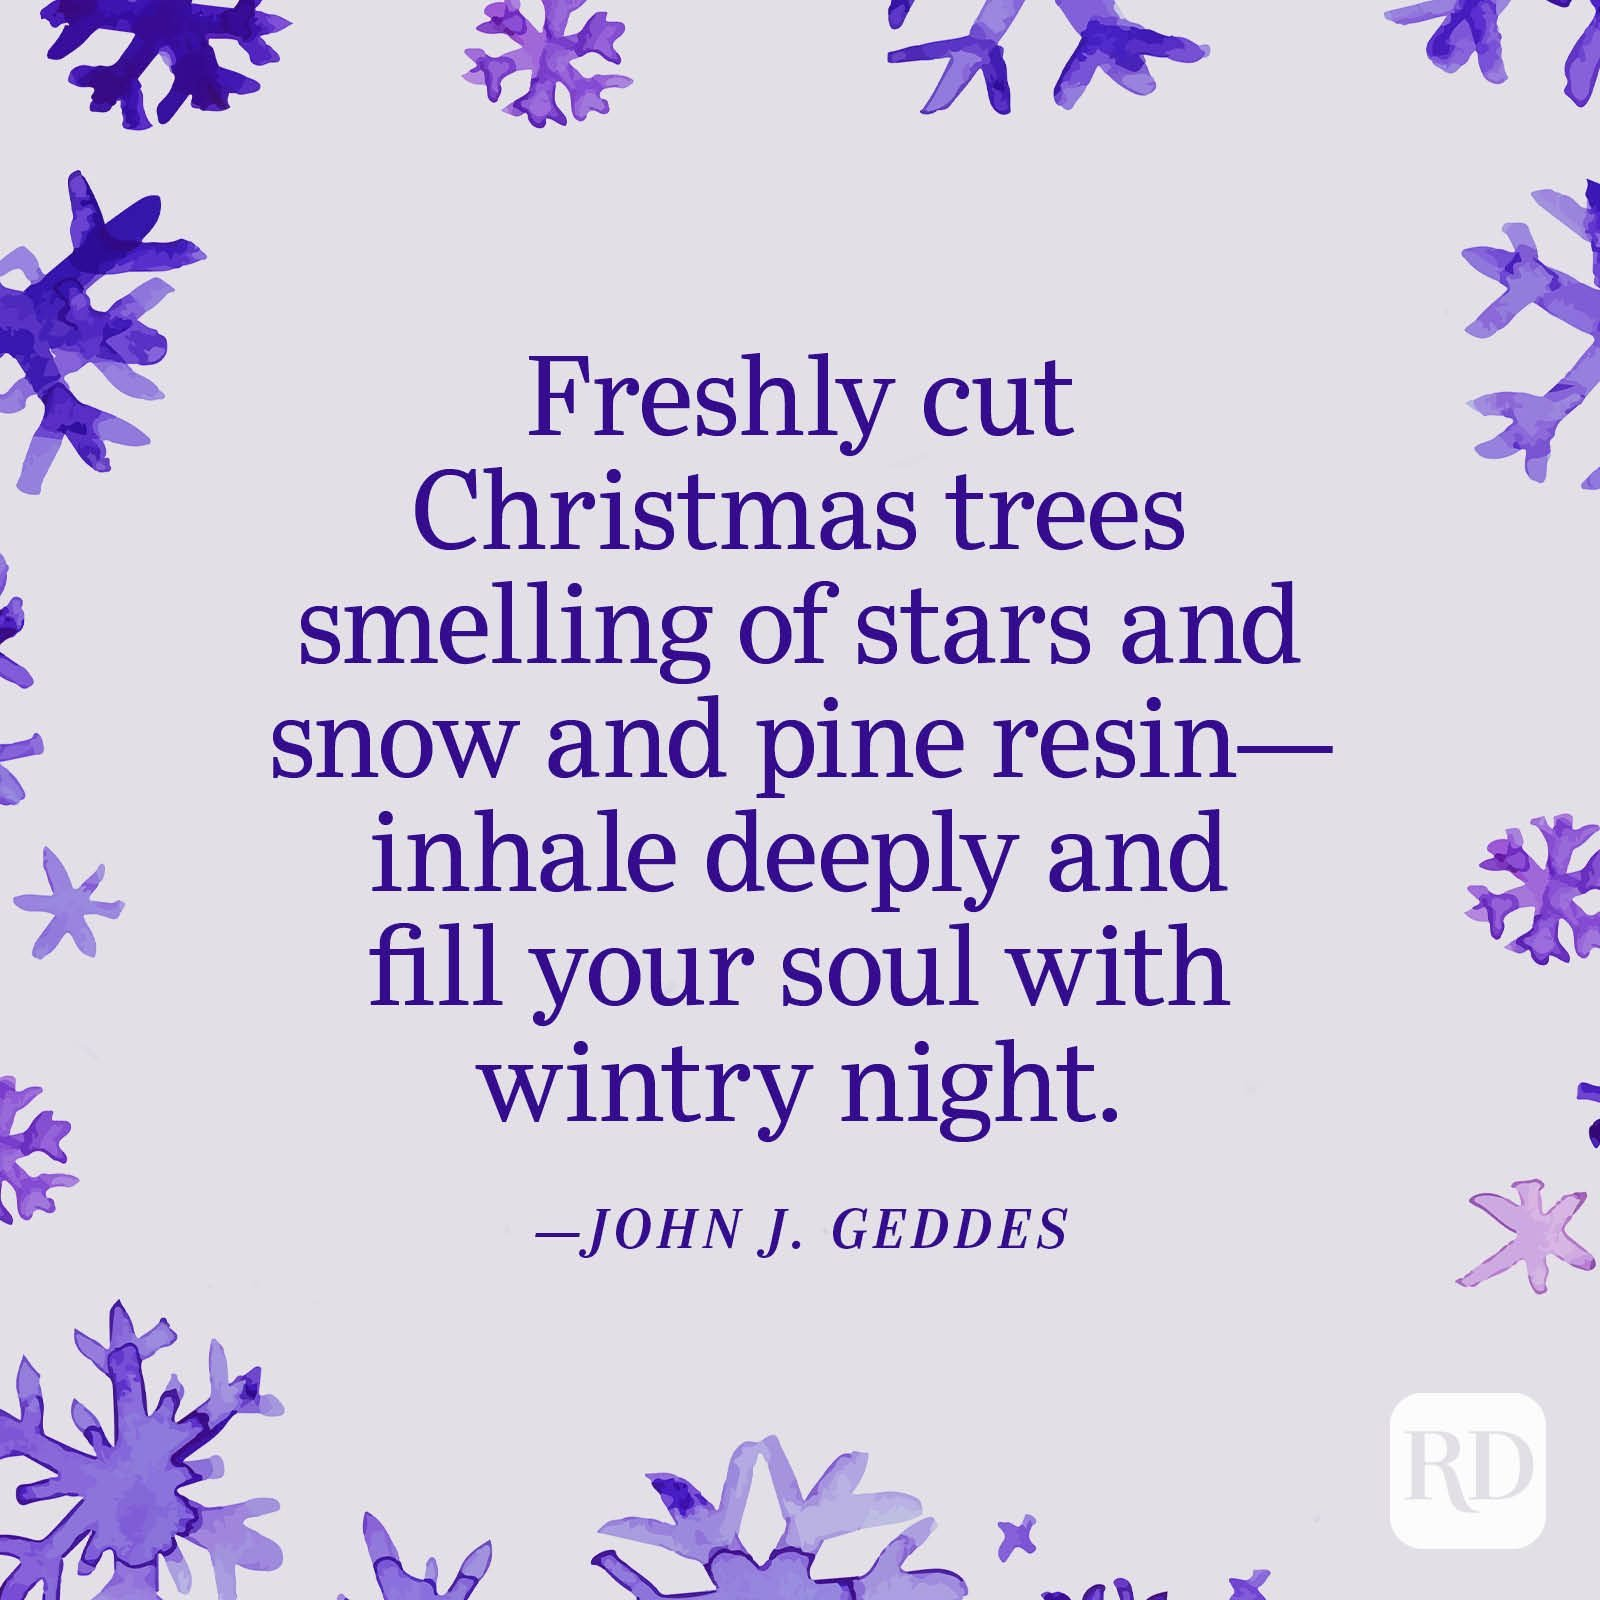 """""""Freshly cut Christmas trees smelling of stars and snow and pine resin—inhale deeply and fill your soul with wintry night."""" —John J. Geddes"""